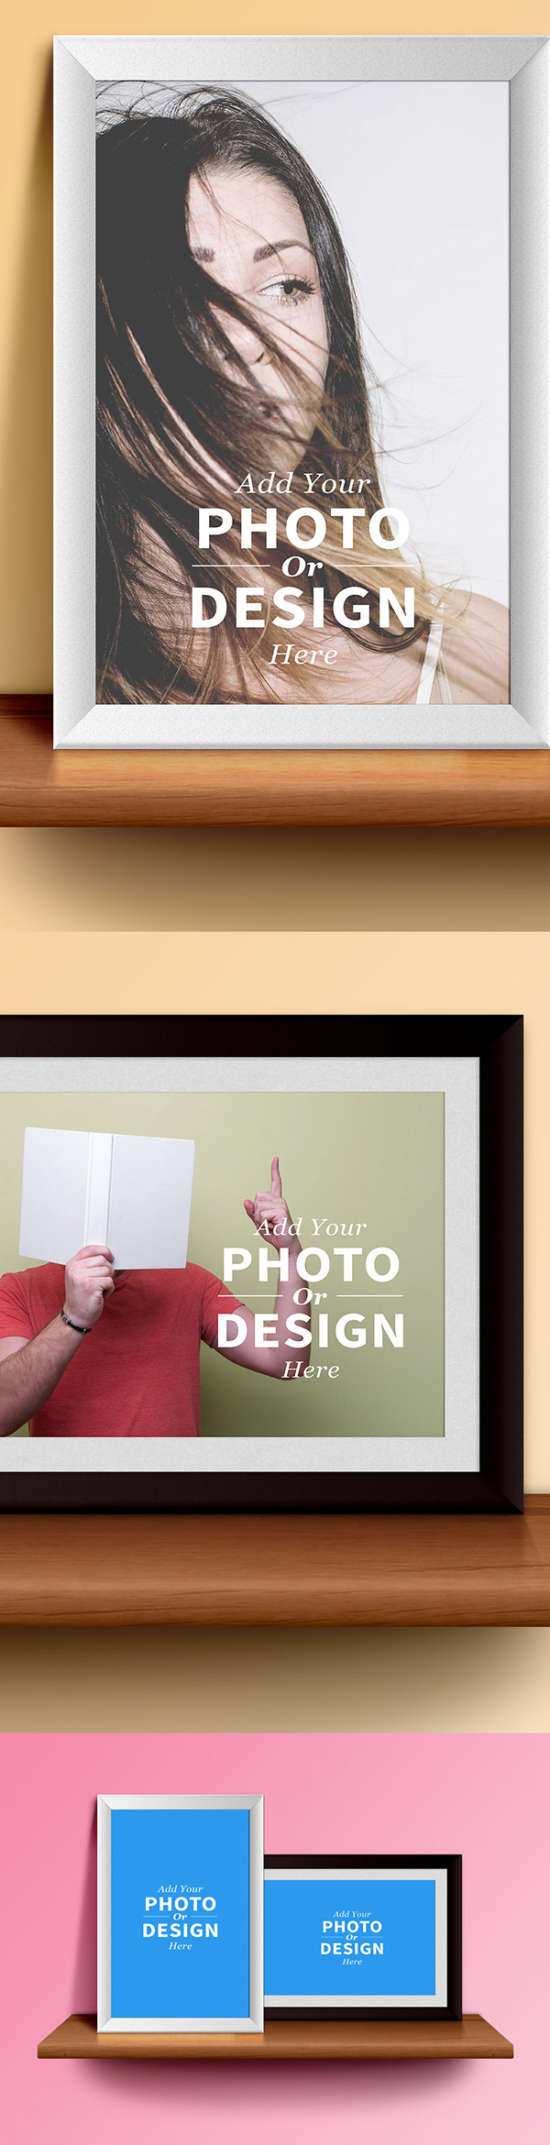 photo_frames_on_the_shelf_psd